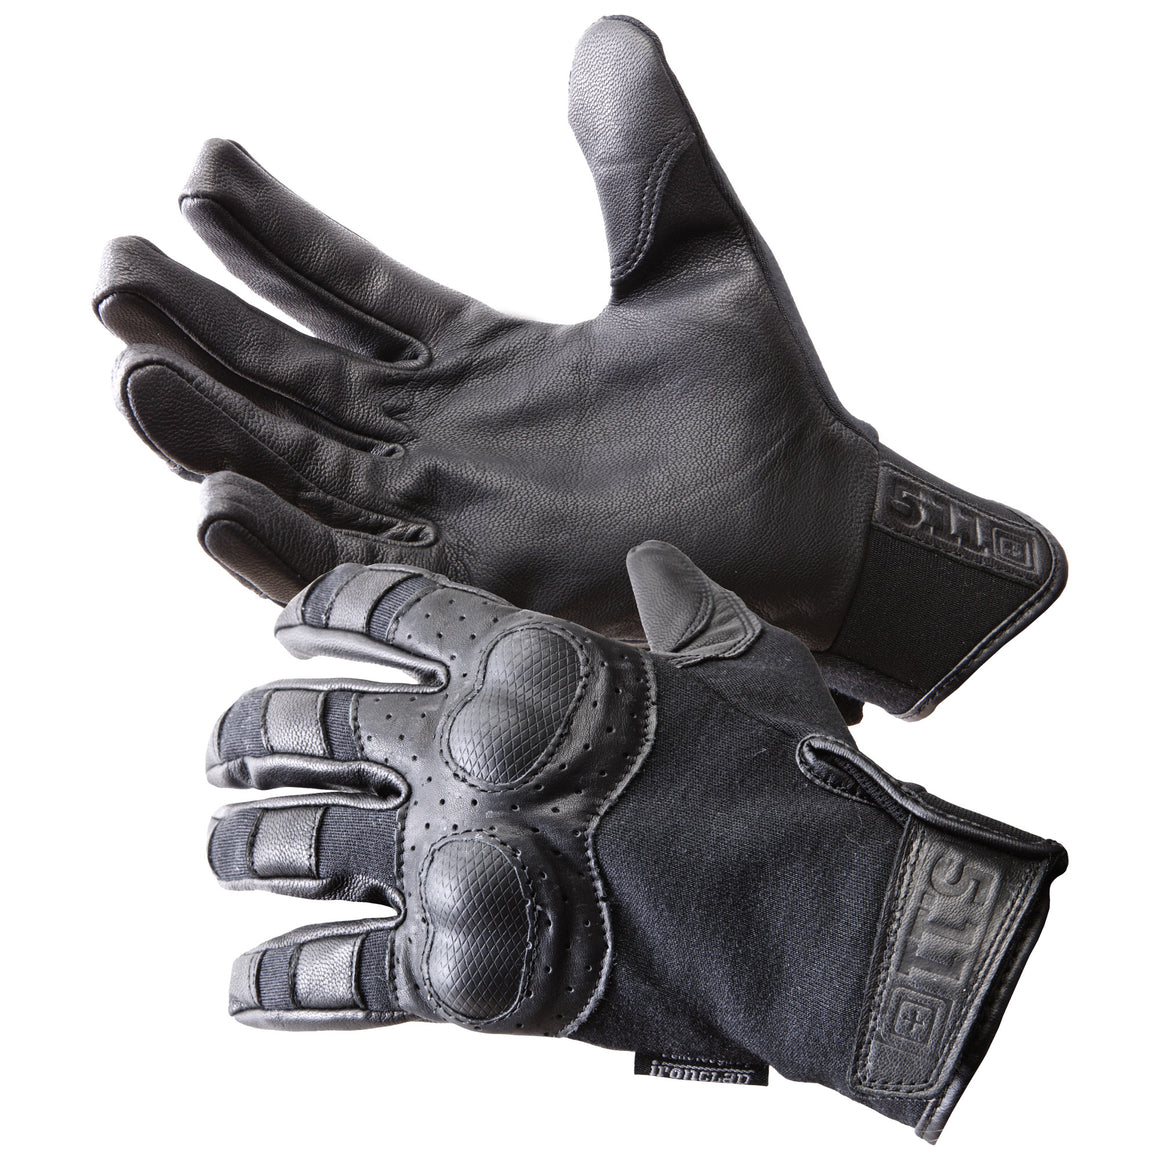 5.11 Hard Time Gloves, 5.11 Hard Time Gloves